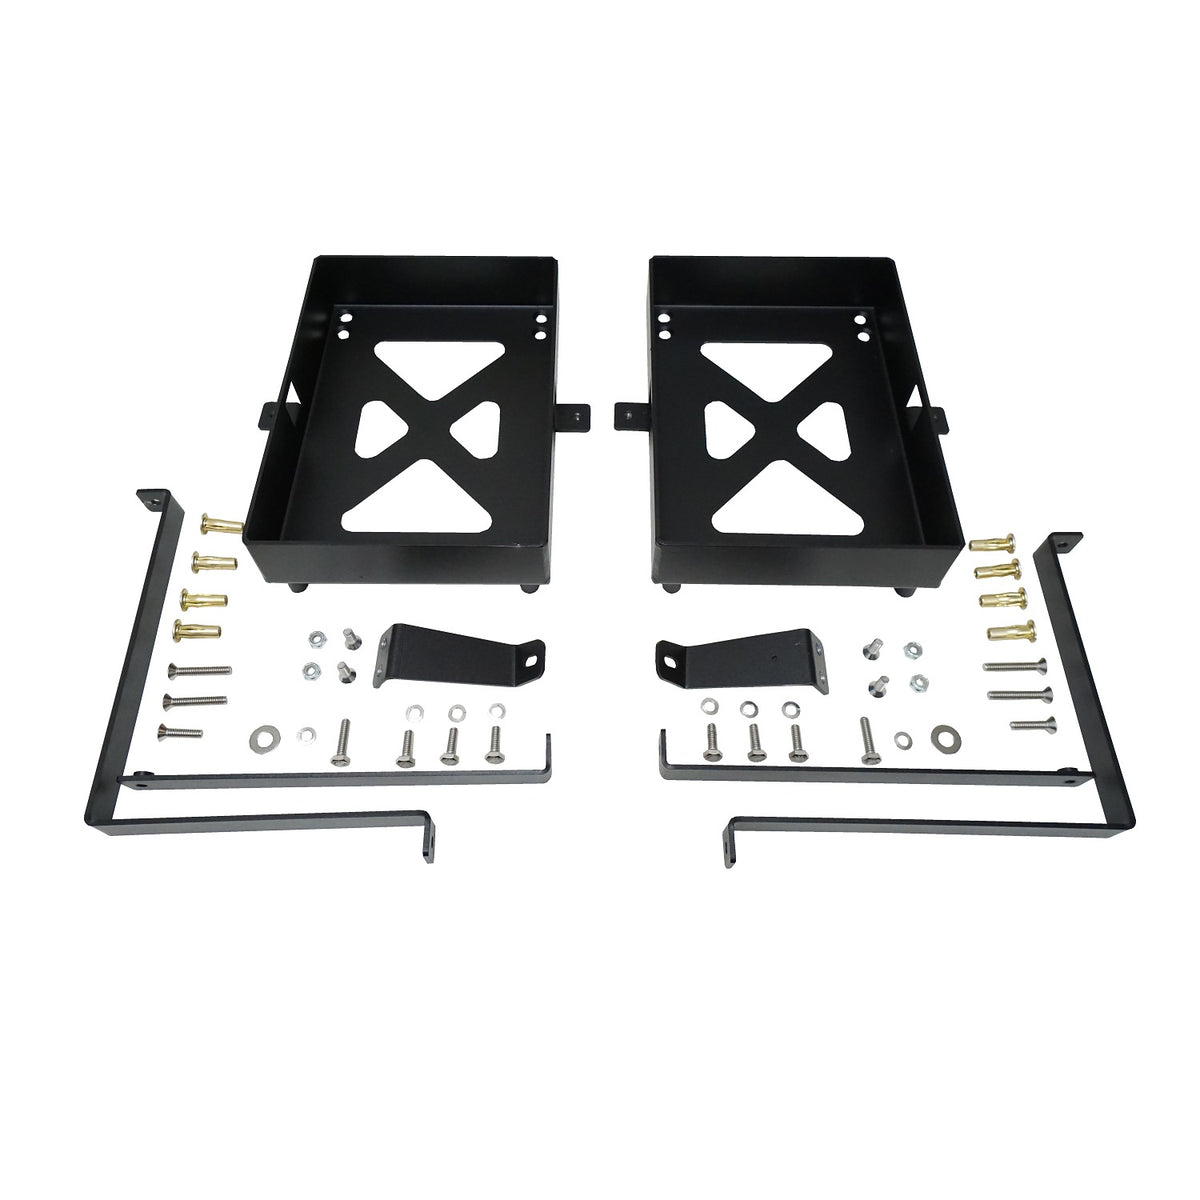 2019+ Sprinter Van 6 Volt Underhood Battery Tray Kit